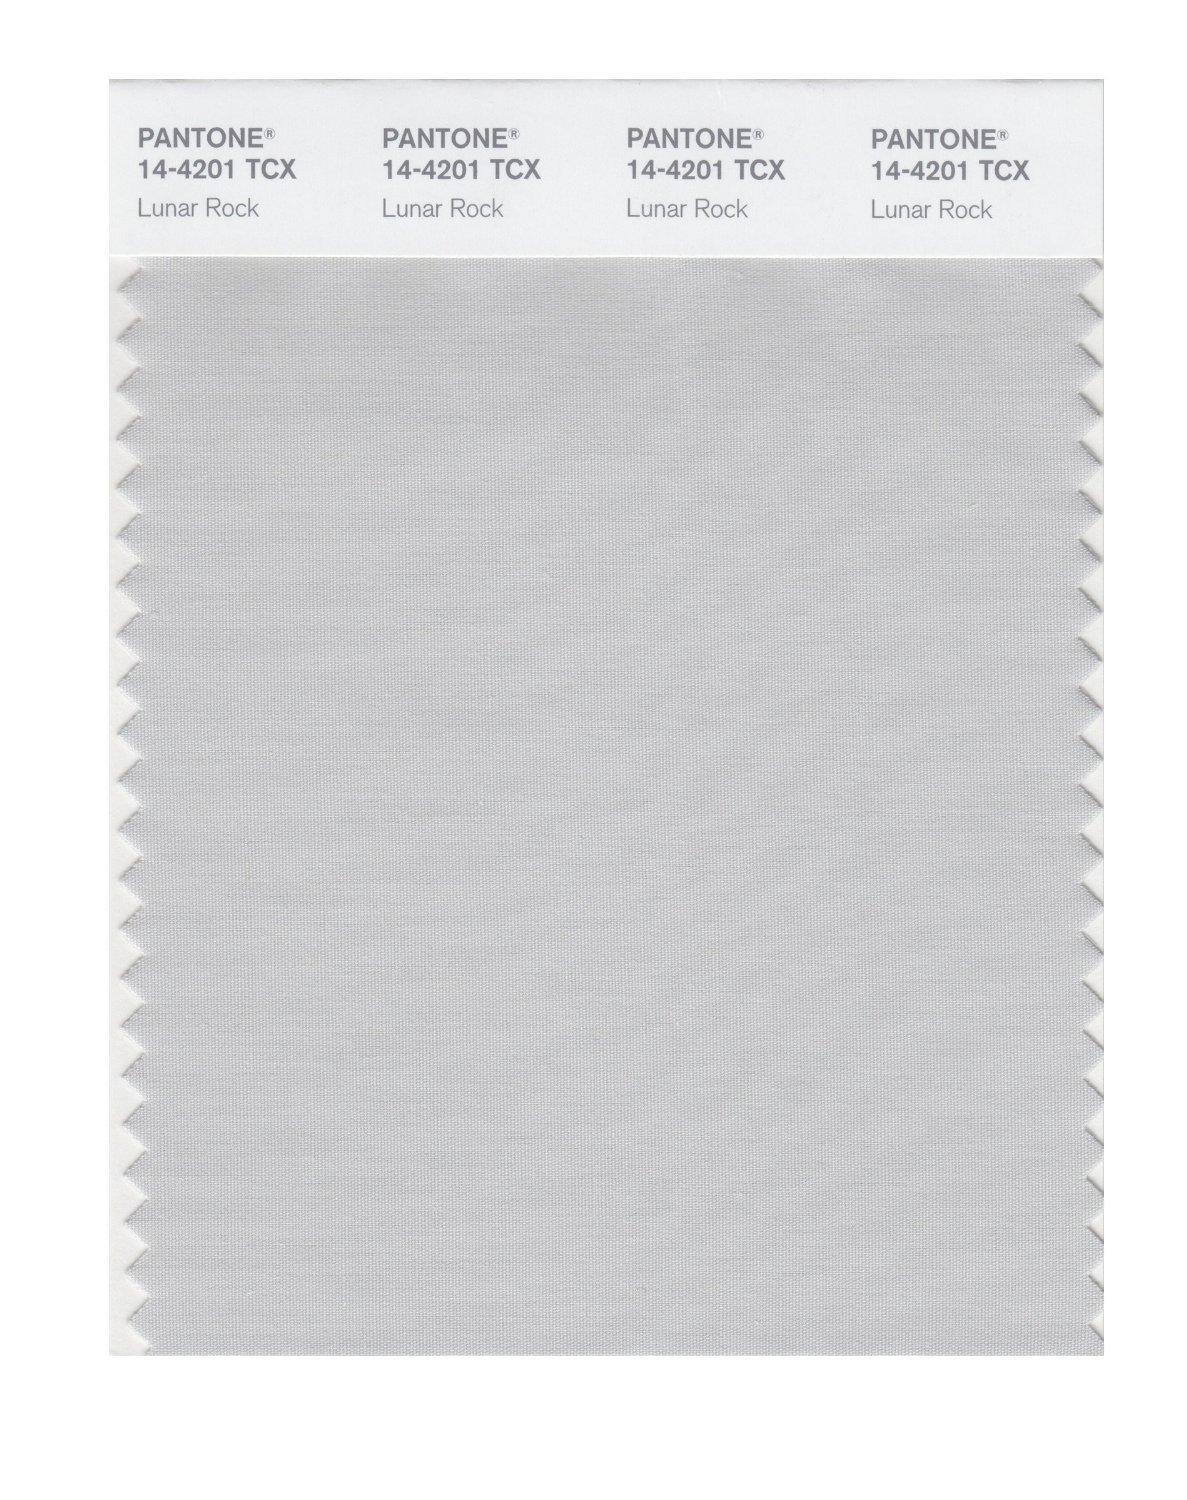 Pantone Smart Swatch 14-4201 Lunar Rock